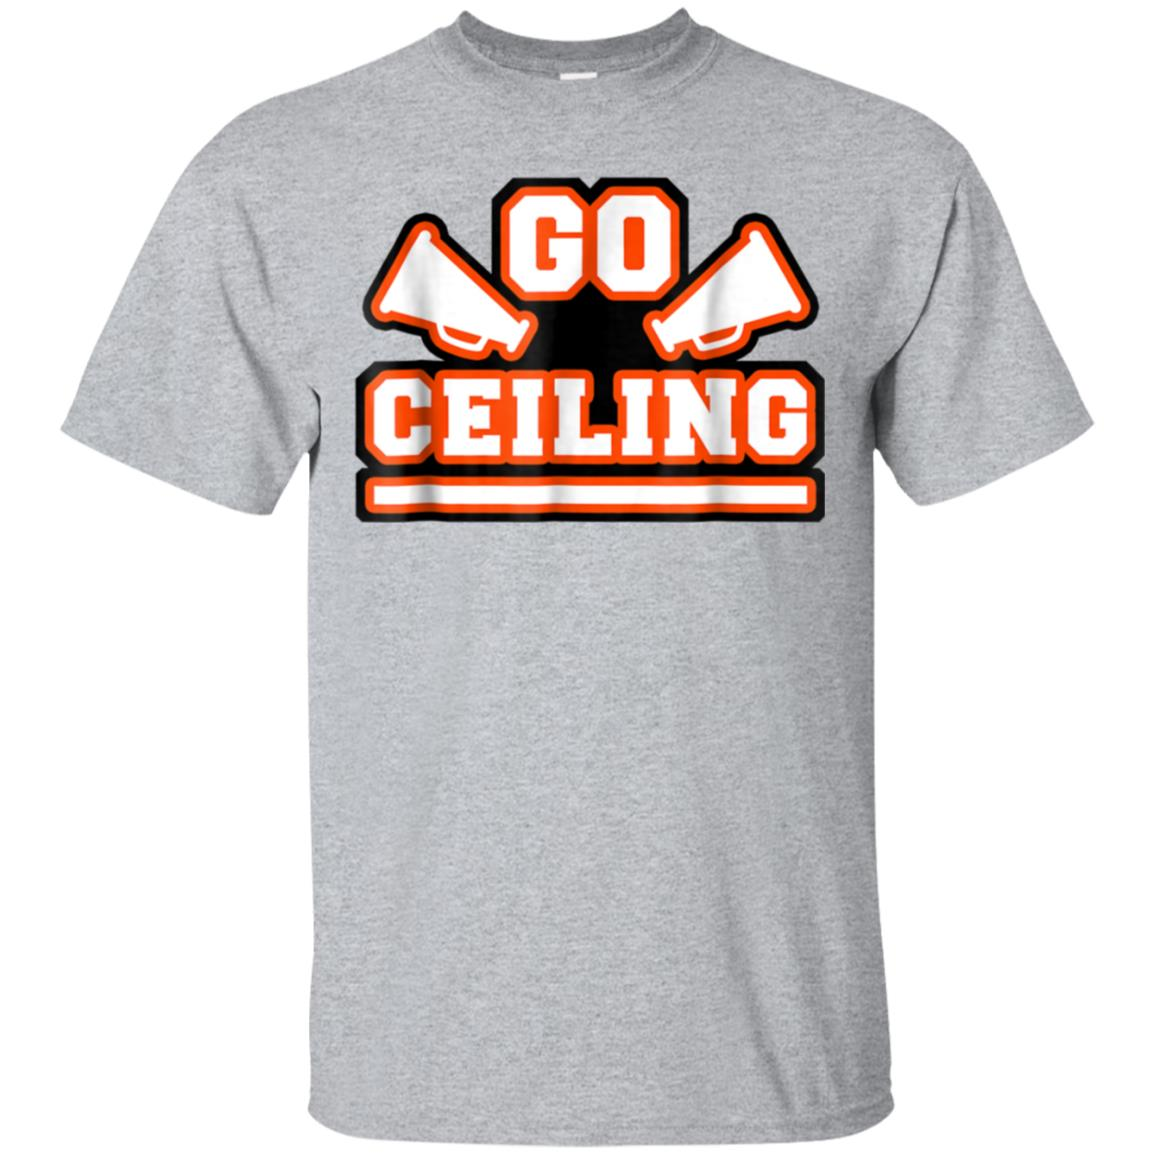 Ceiling Fan Halloween Costume Shirt Funny Last Minute Idea 99promocode